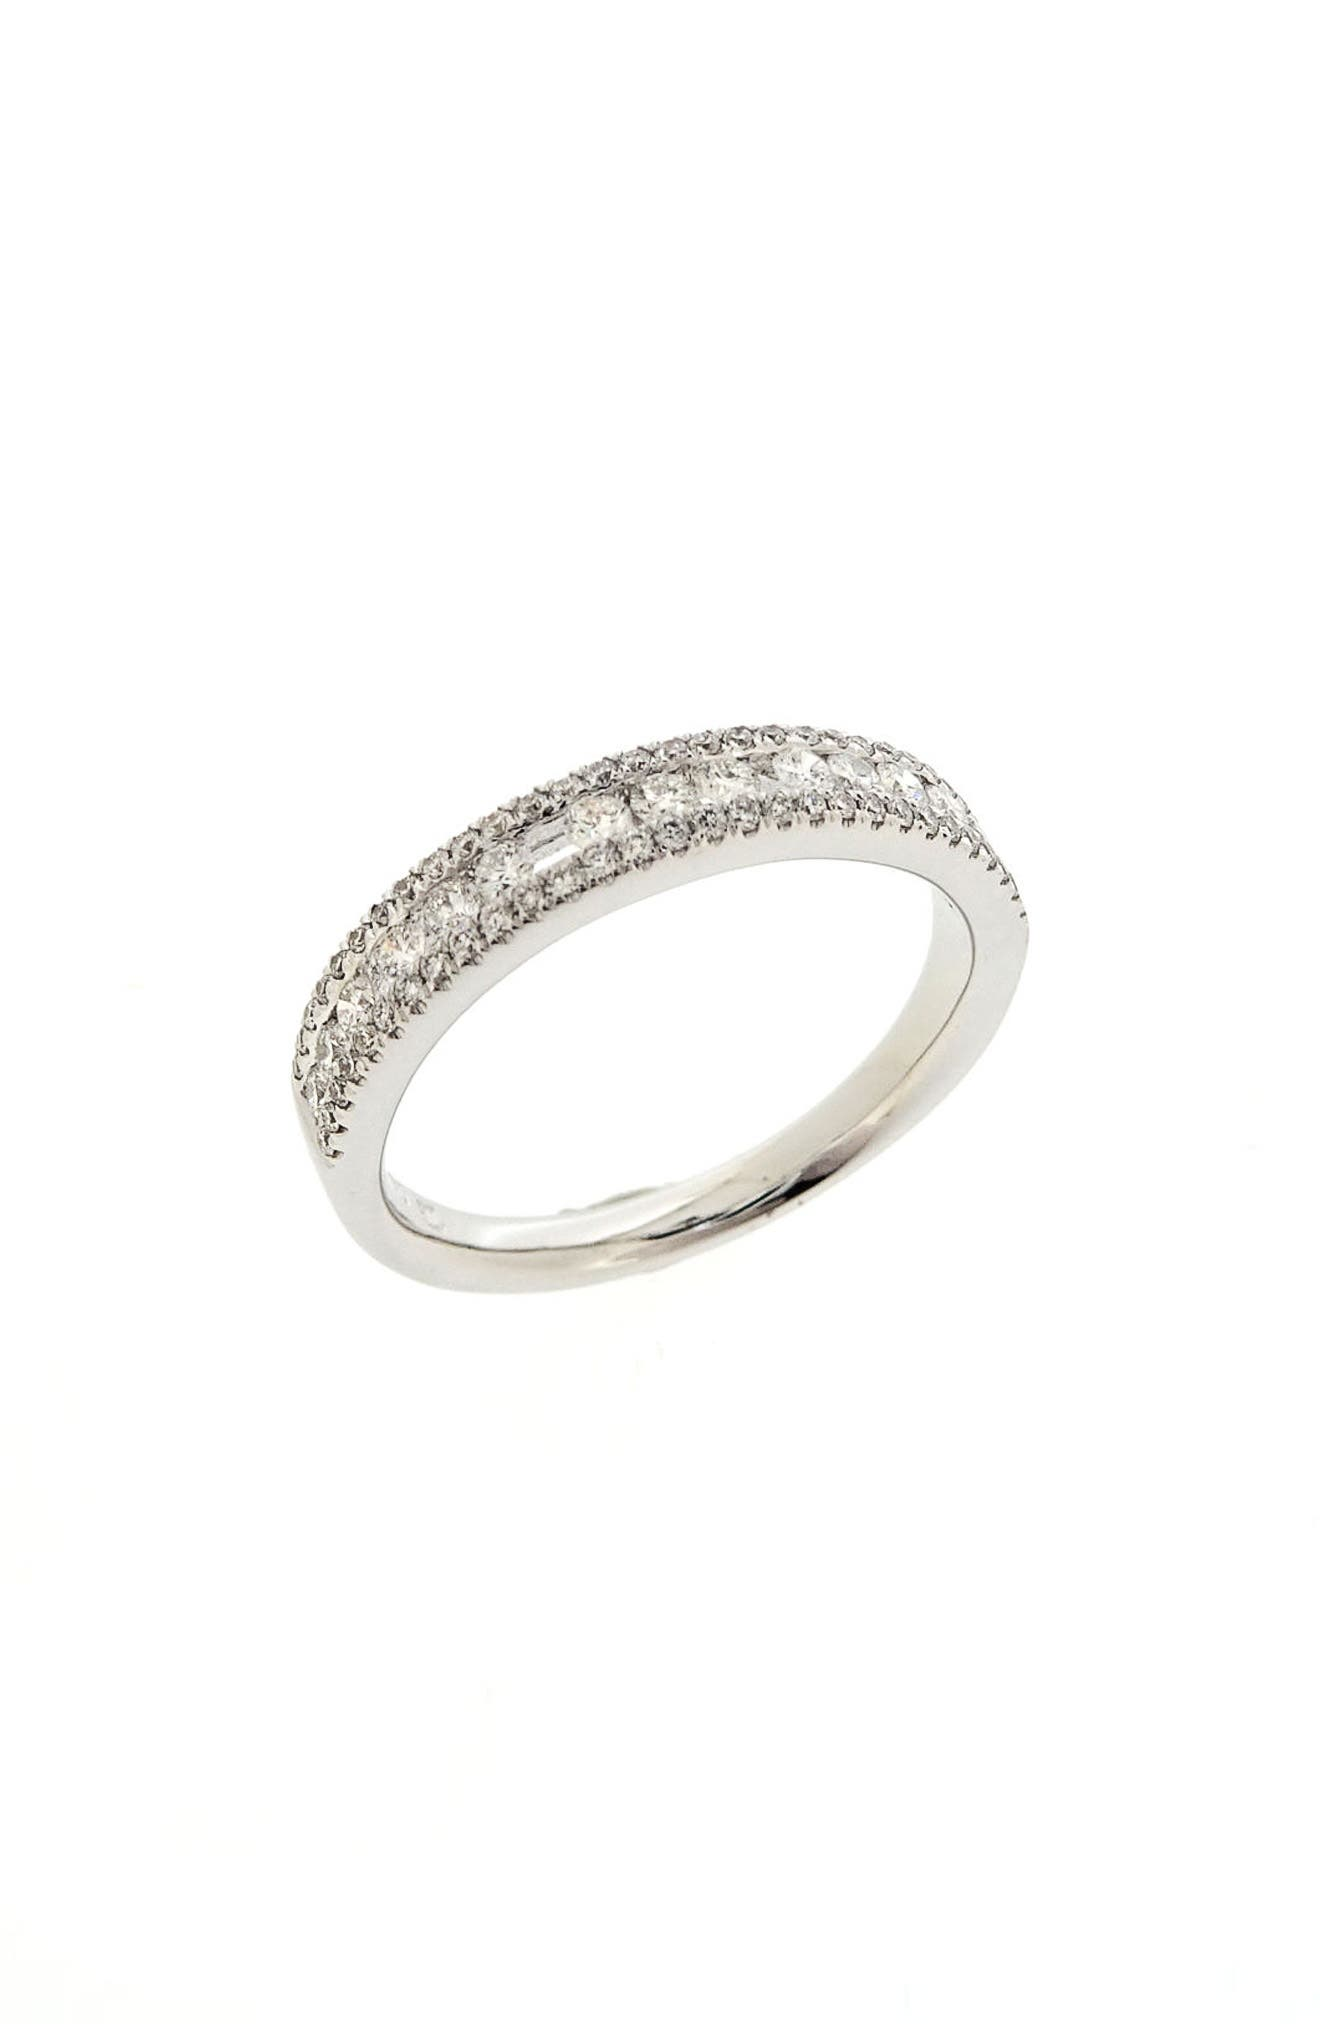 Amara Luxe Stackable Diamond Ring,                             Main thumbnail 1, color,                             White Gold